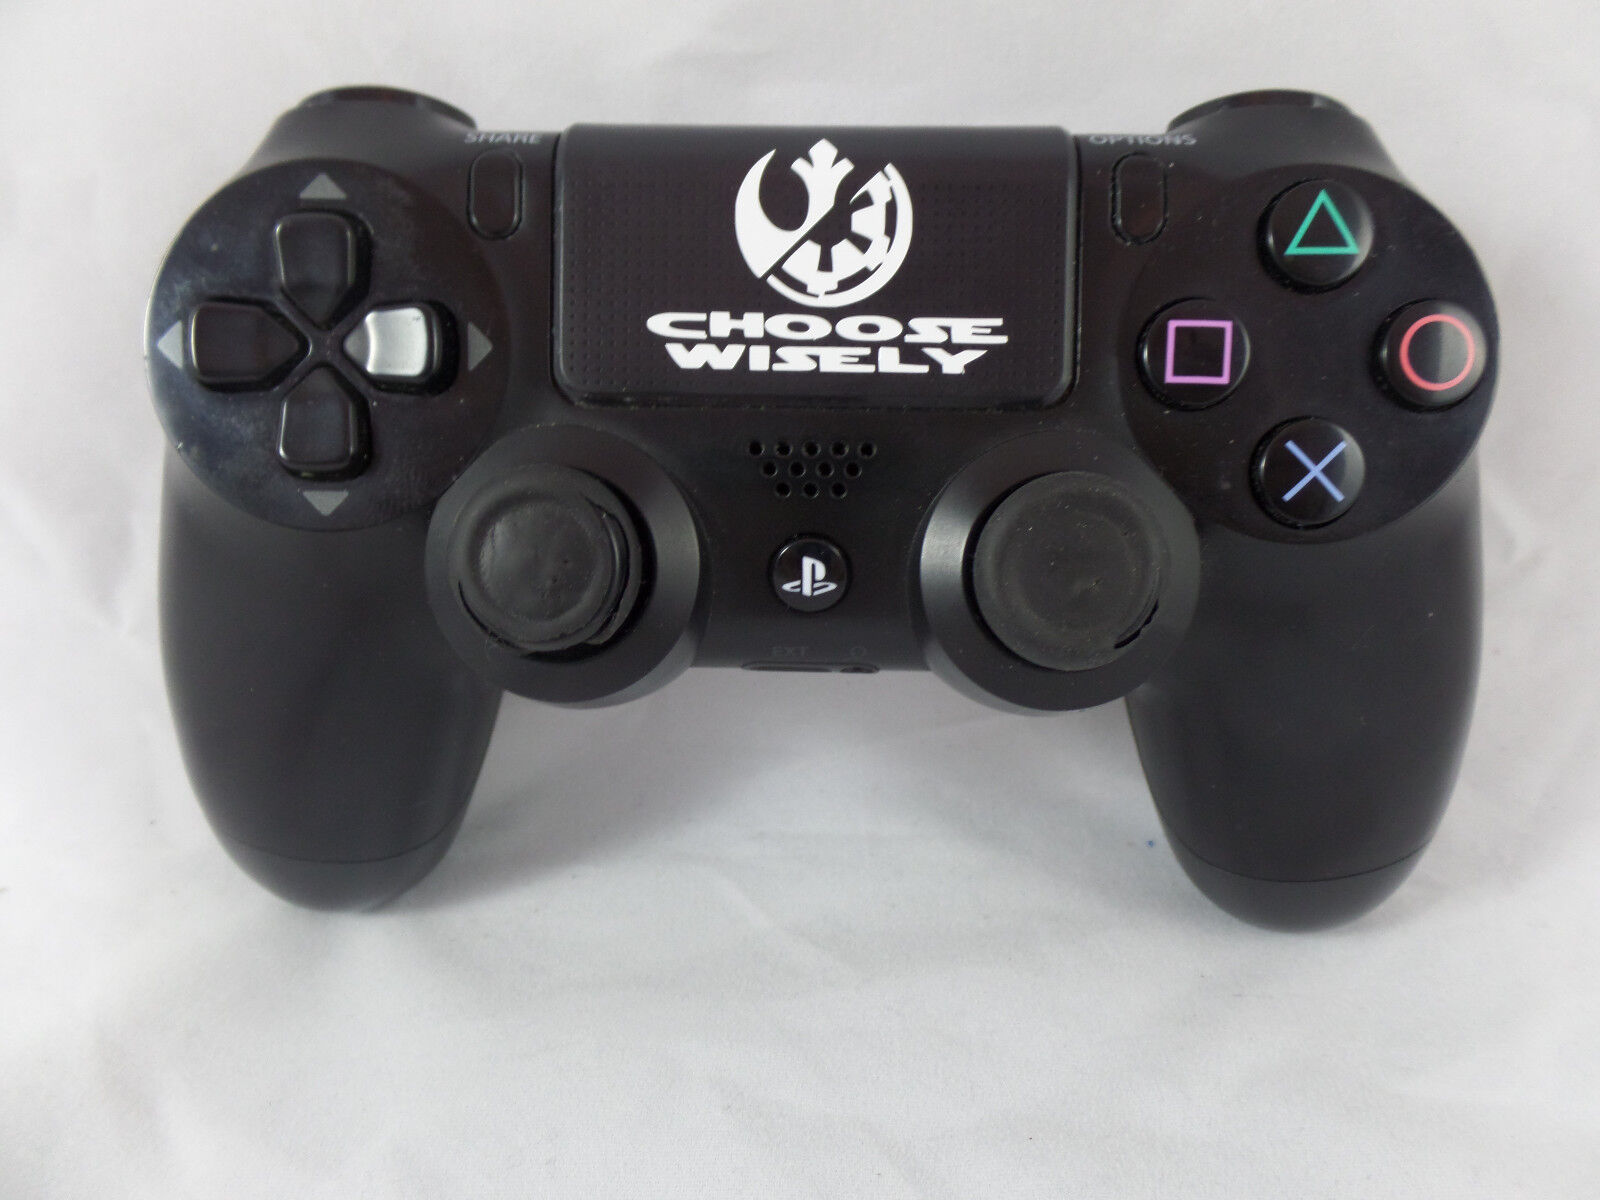 Playstation 4 PS4 Controller Star Wars Choose Wisely ...